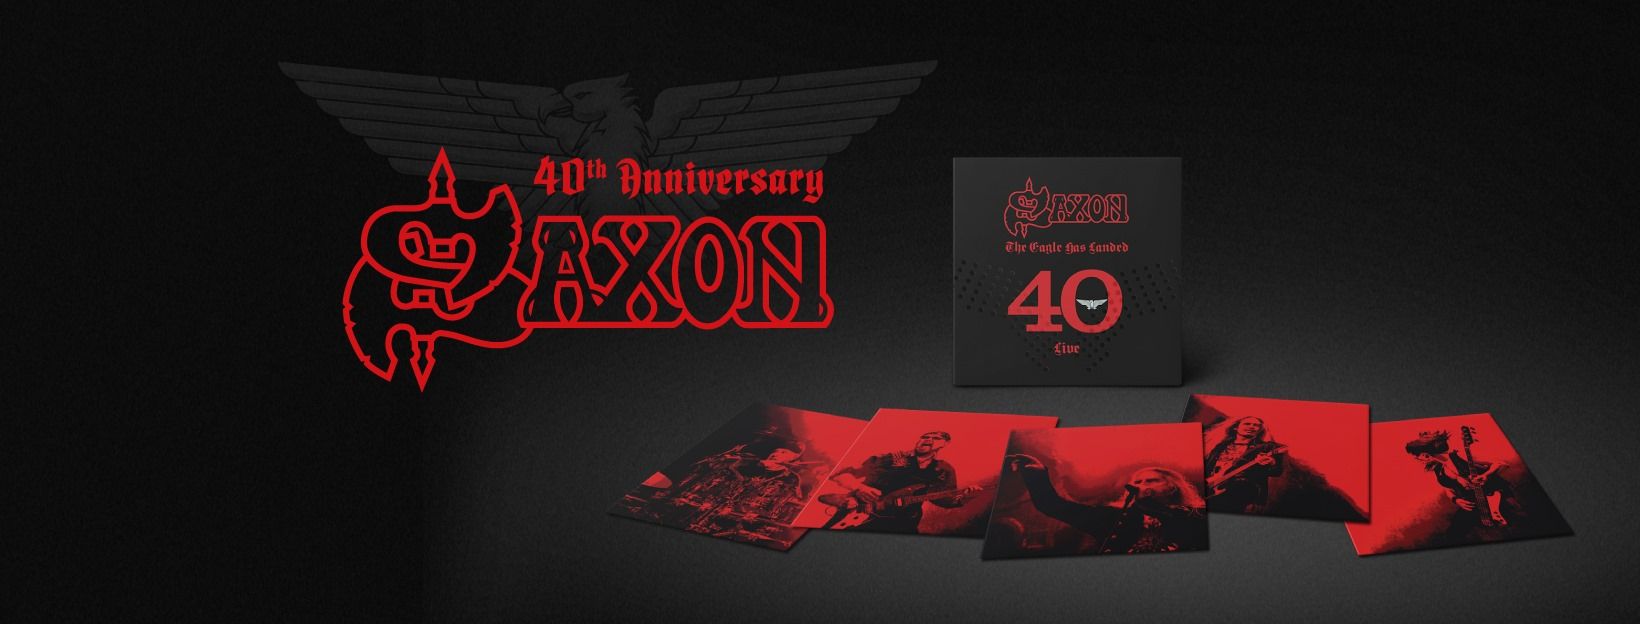 SAXON The Eagle Has Landed 40 (Live) (2019) Heavy Metal Angleterre 61269410